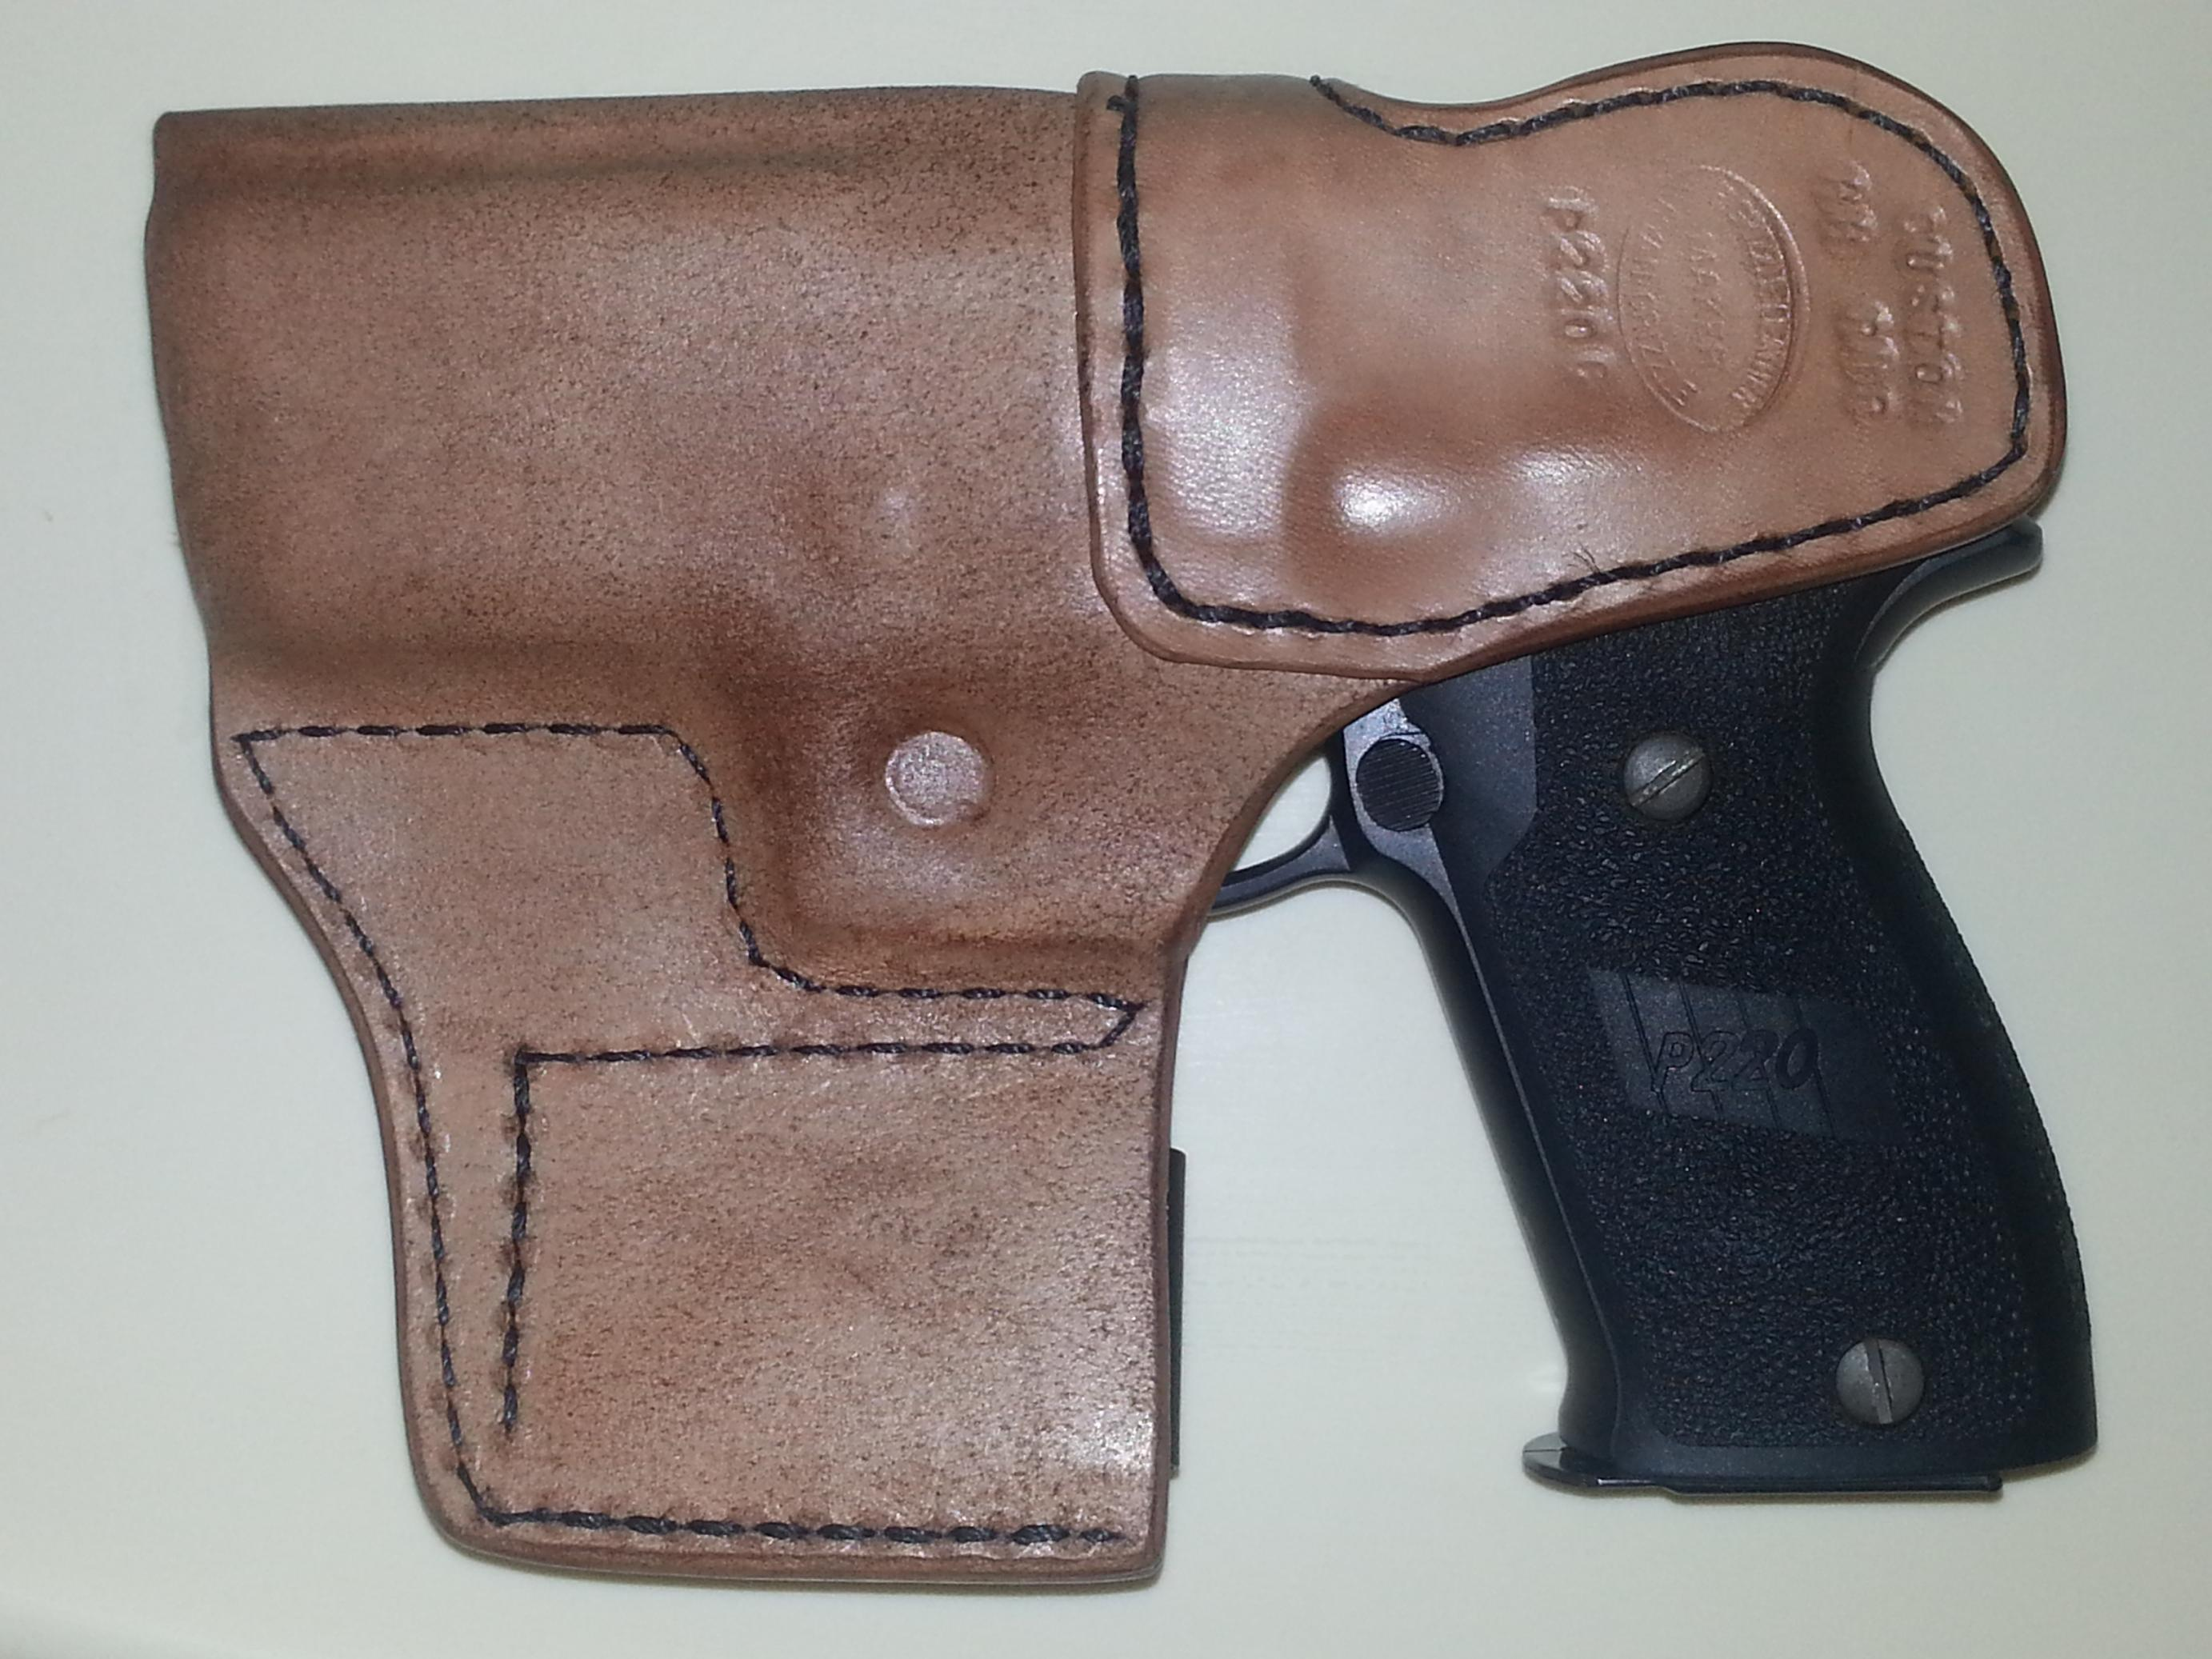 Custom appendix carry holster from R Grizzle Leather-20121030_184523.jpg